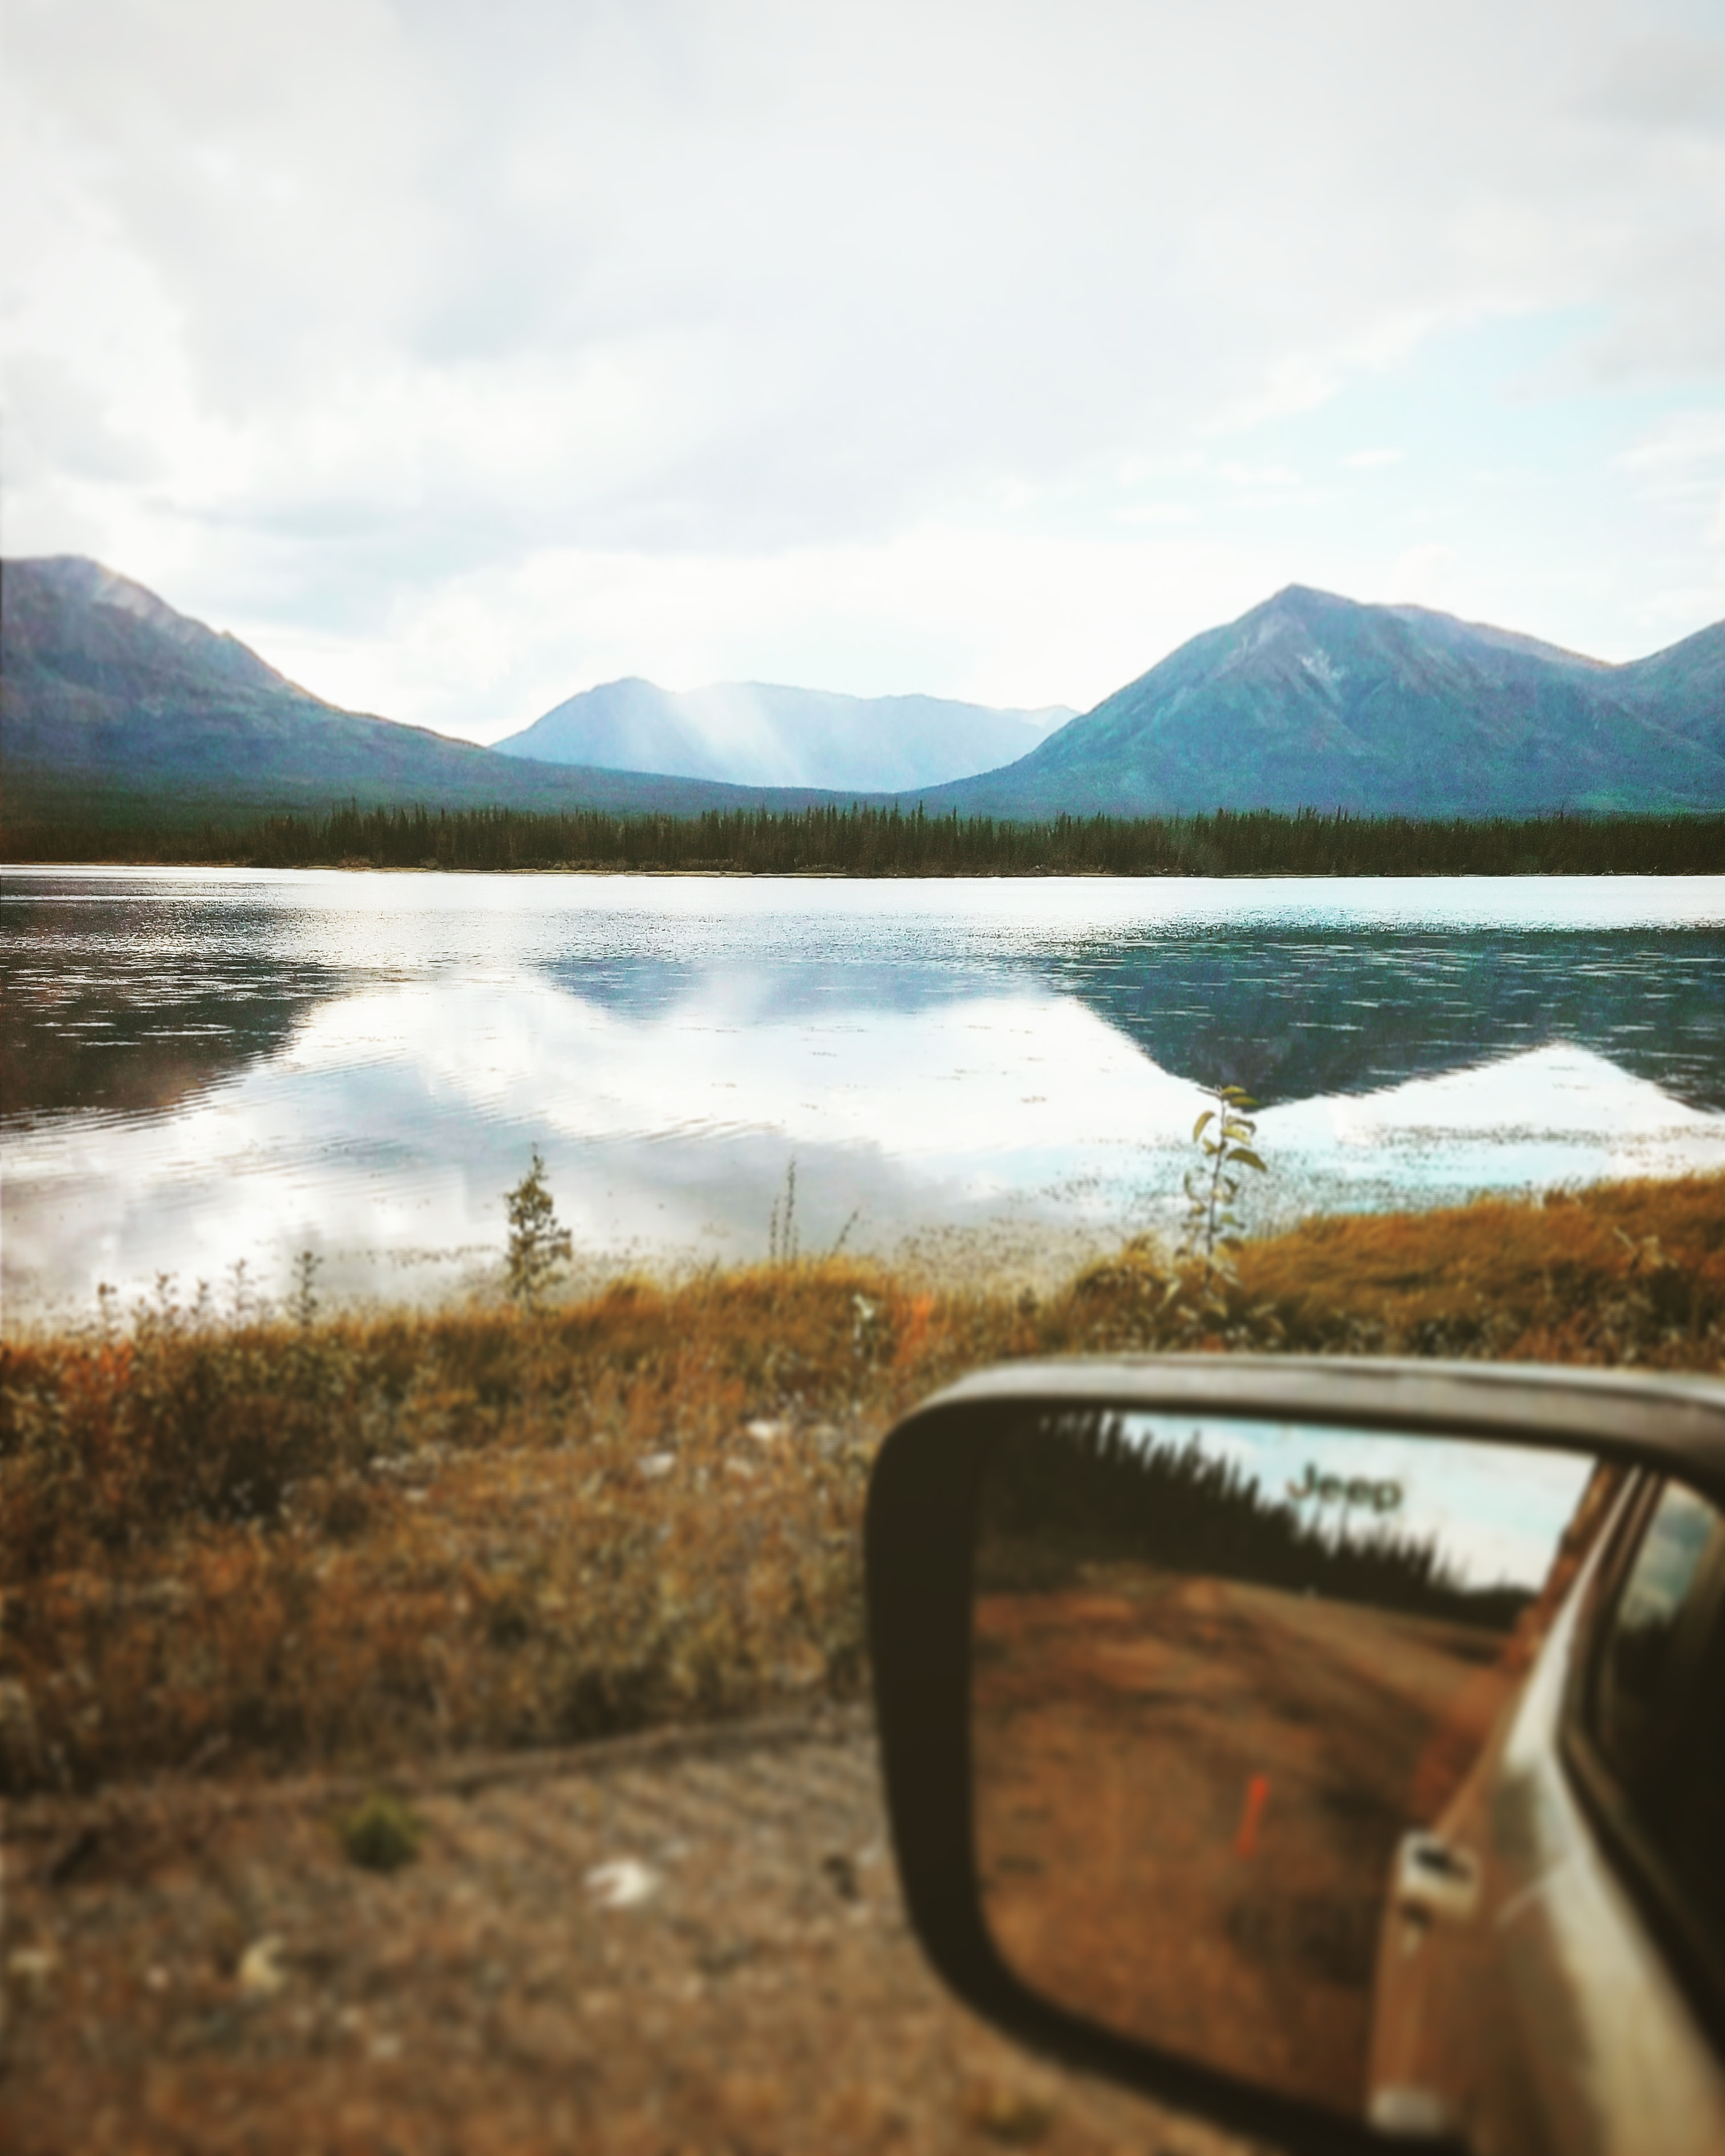 View from a car on its mirror and a quiet lake in the mountains